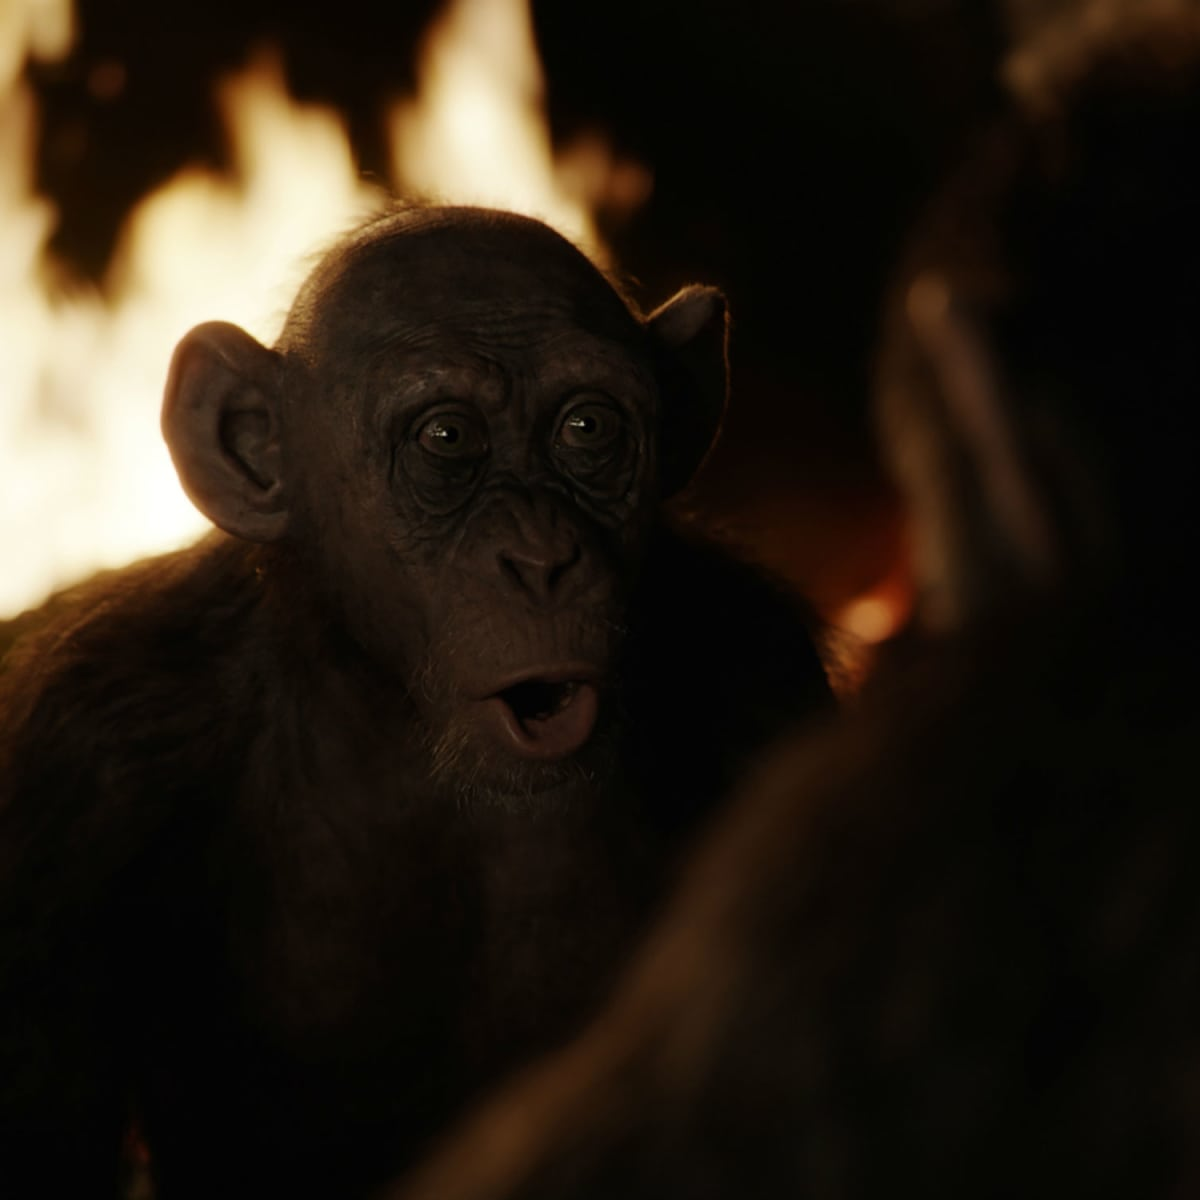 Steve Zahn as Bad Ape in War for the Planet of the Apes